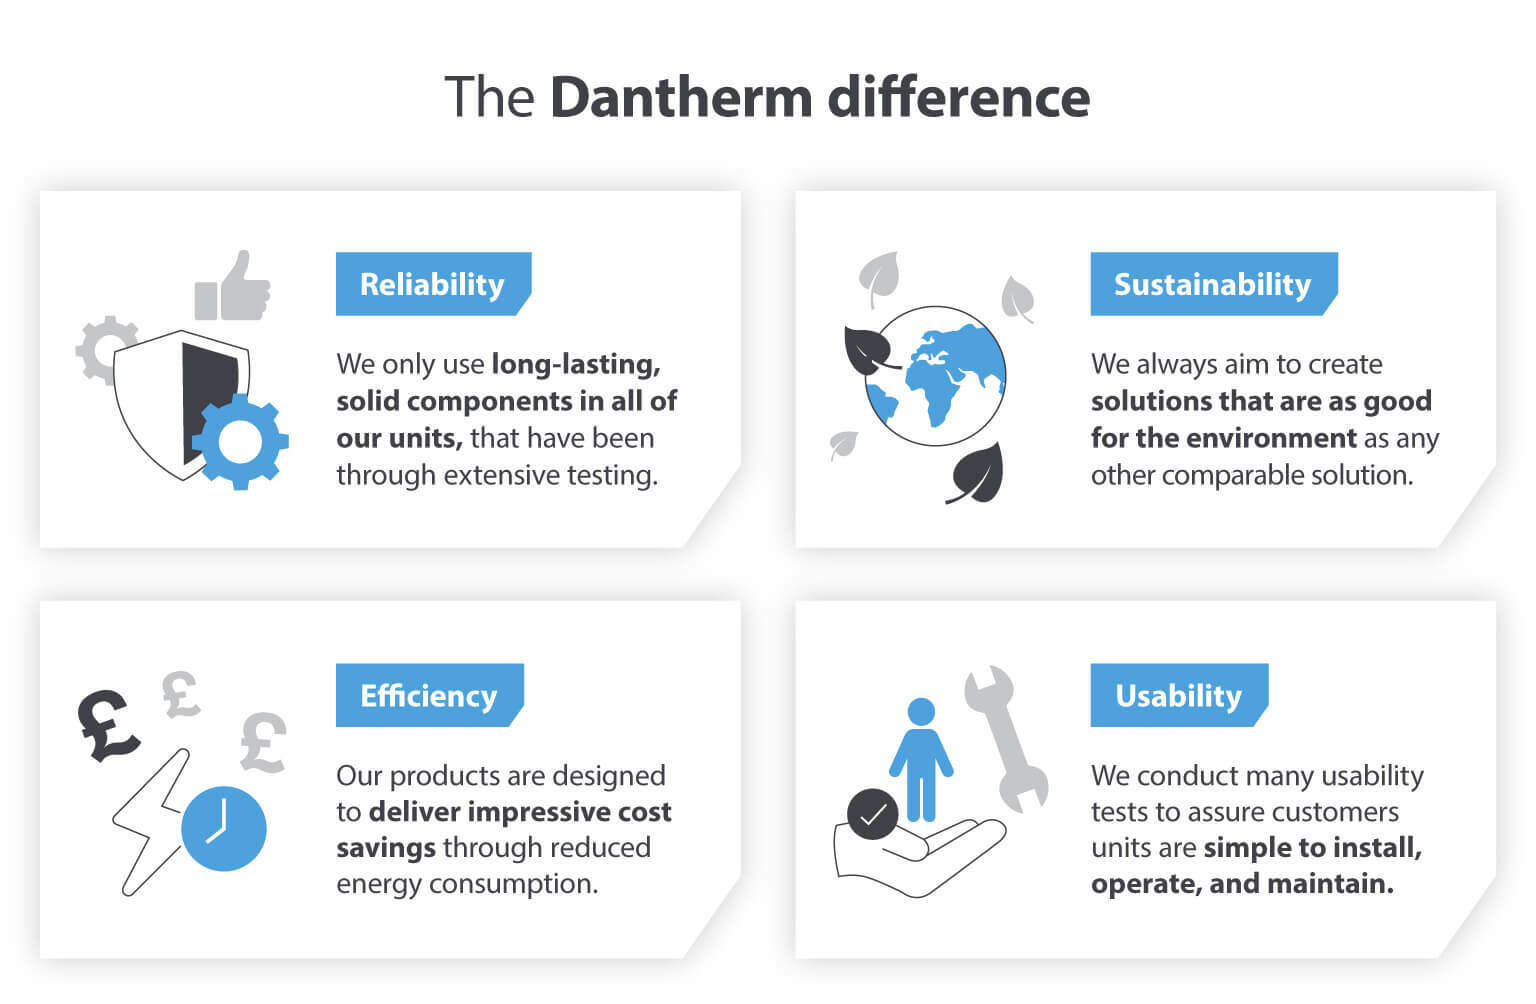 The Dantherm difference